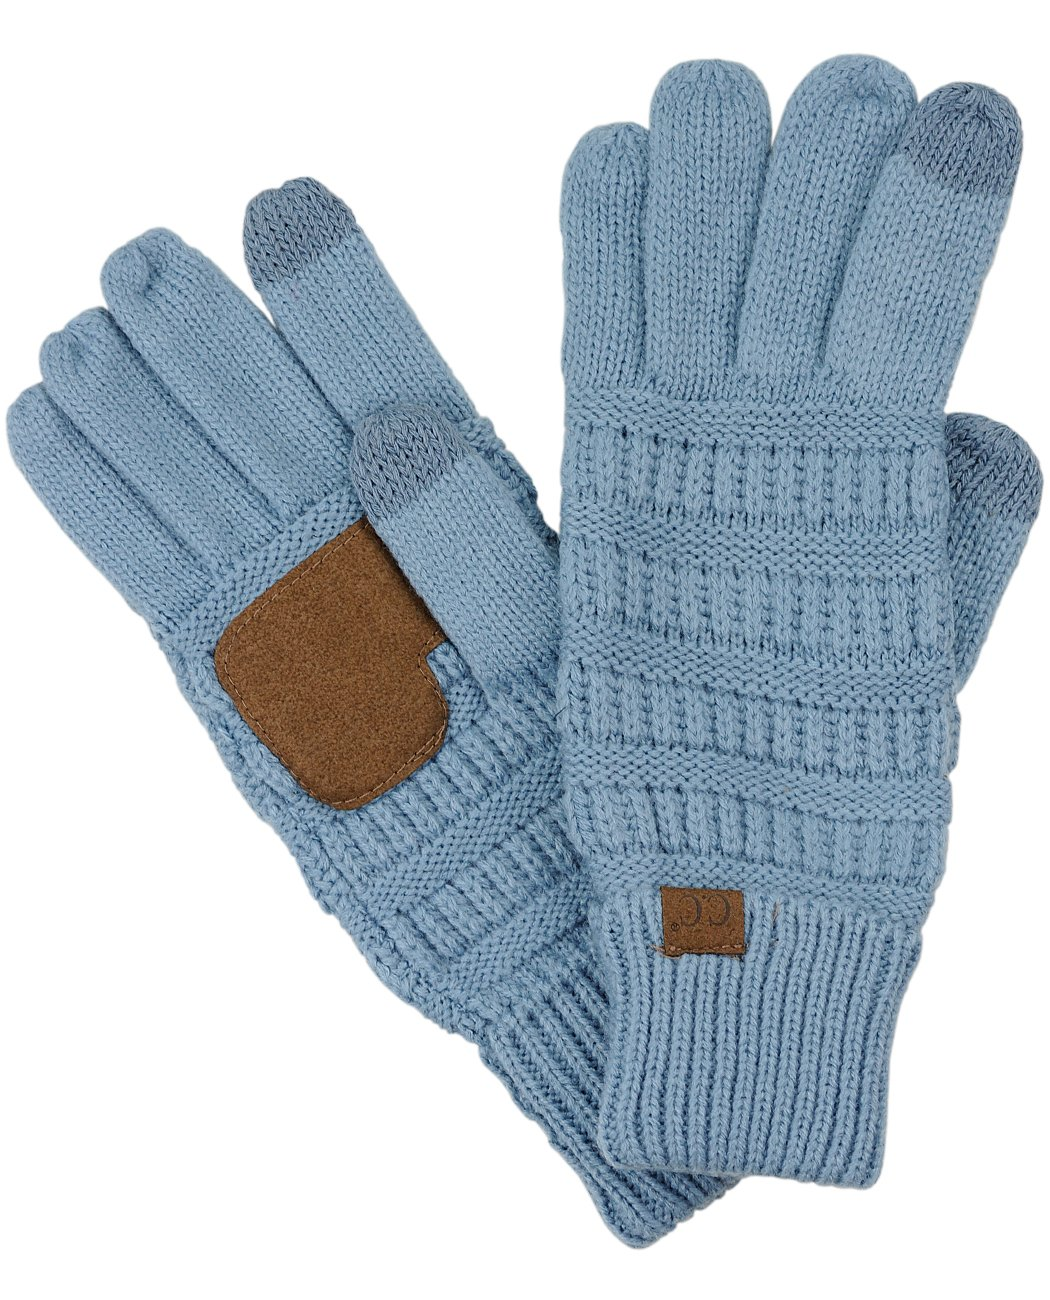 Buy Cable Knit Texting Gloves Now!